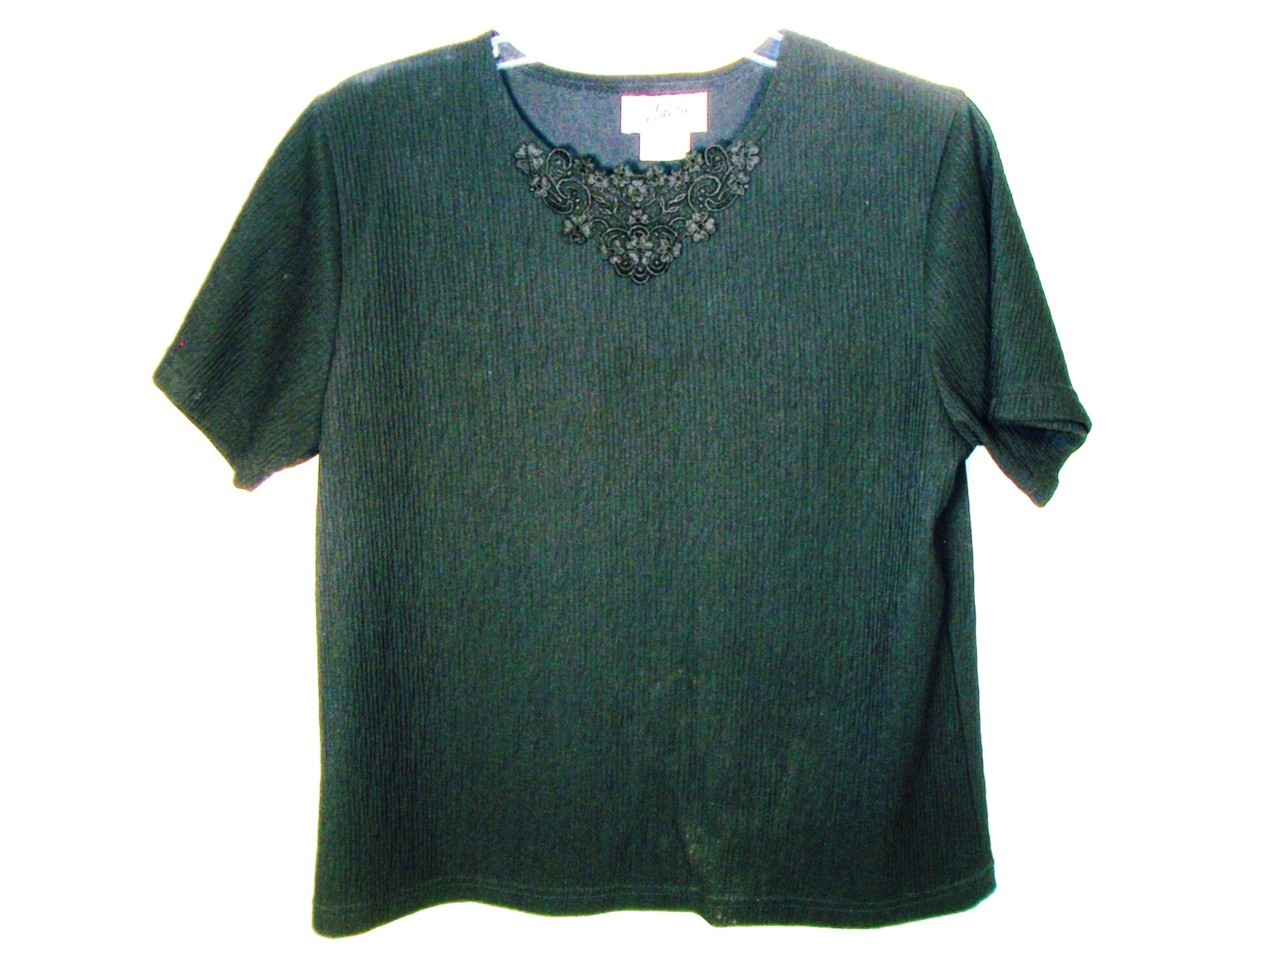 WOMEN VALERIE CAREER DRESS BLACK TOP SHIRT PET MEDIUM